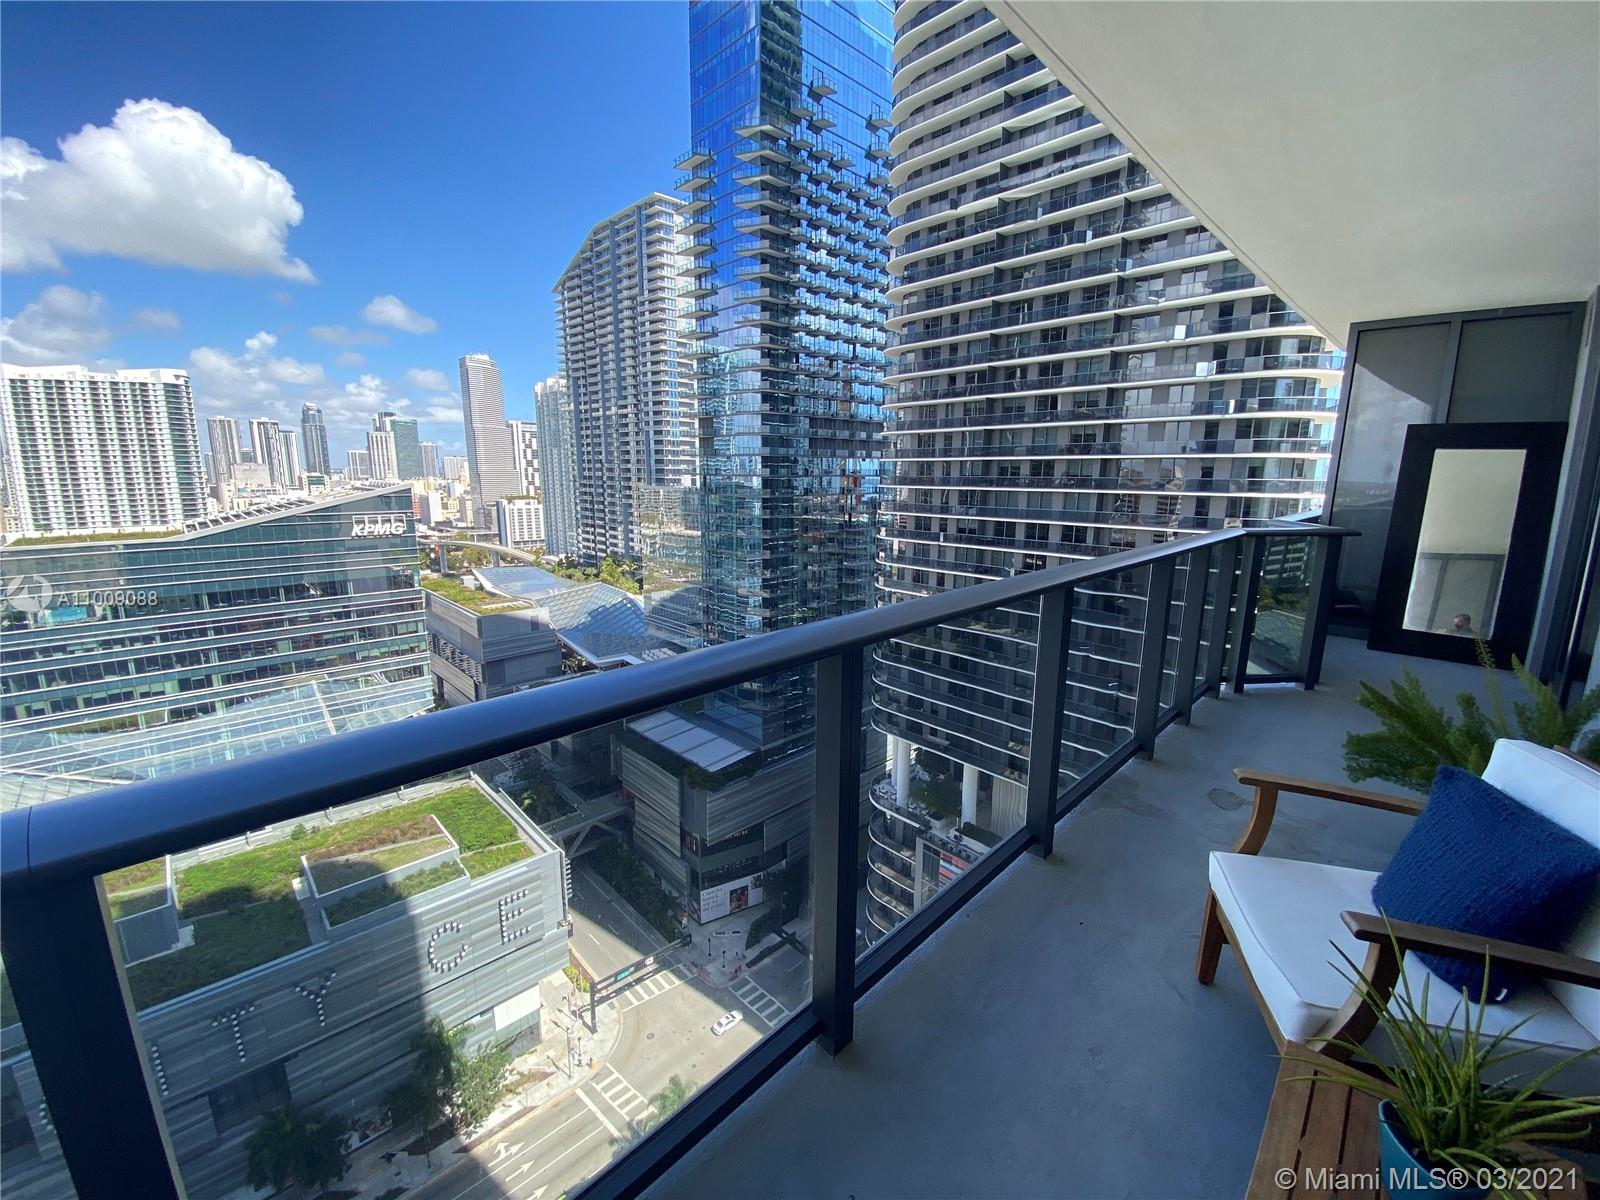 Rarely available 1 bedroom 1.5 bathroom at Brickell Heights. Spacious floorplan with north view to Brickell City Center and Miami River. Luxury finishes and oversized balcony. Amenities include lounge pool, fitness center, rooftop pool and Equinox Club on site.